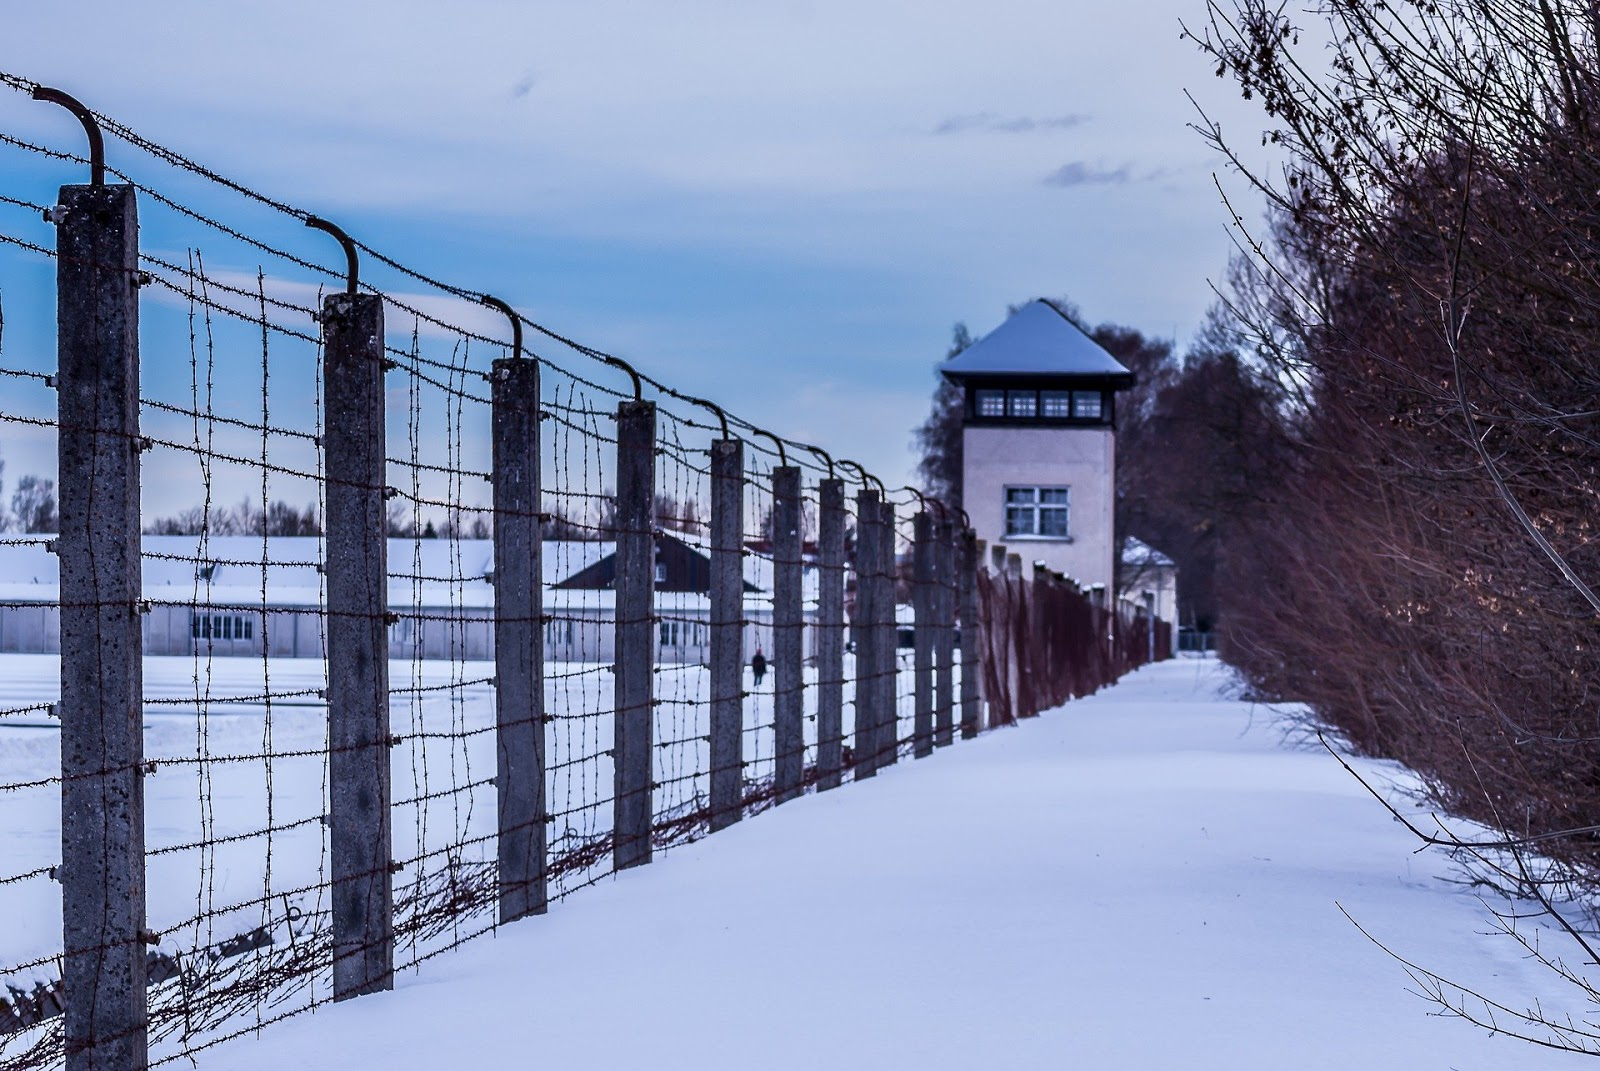 a long prison fence diseccts a large snowy prison field to illustrate a blog post about war crimes